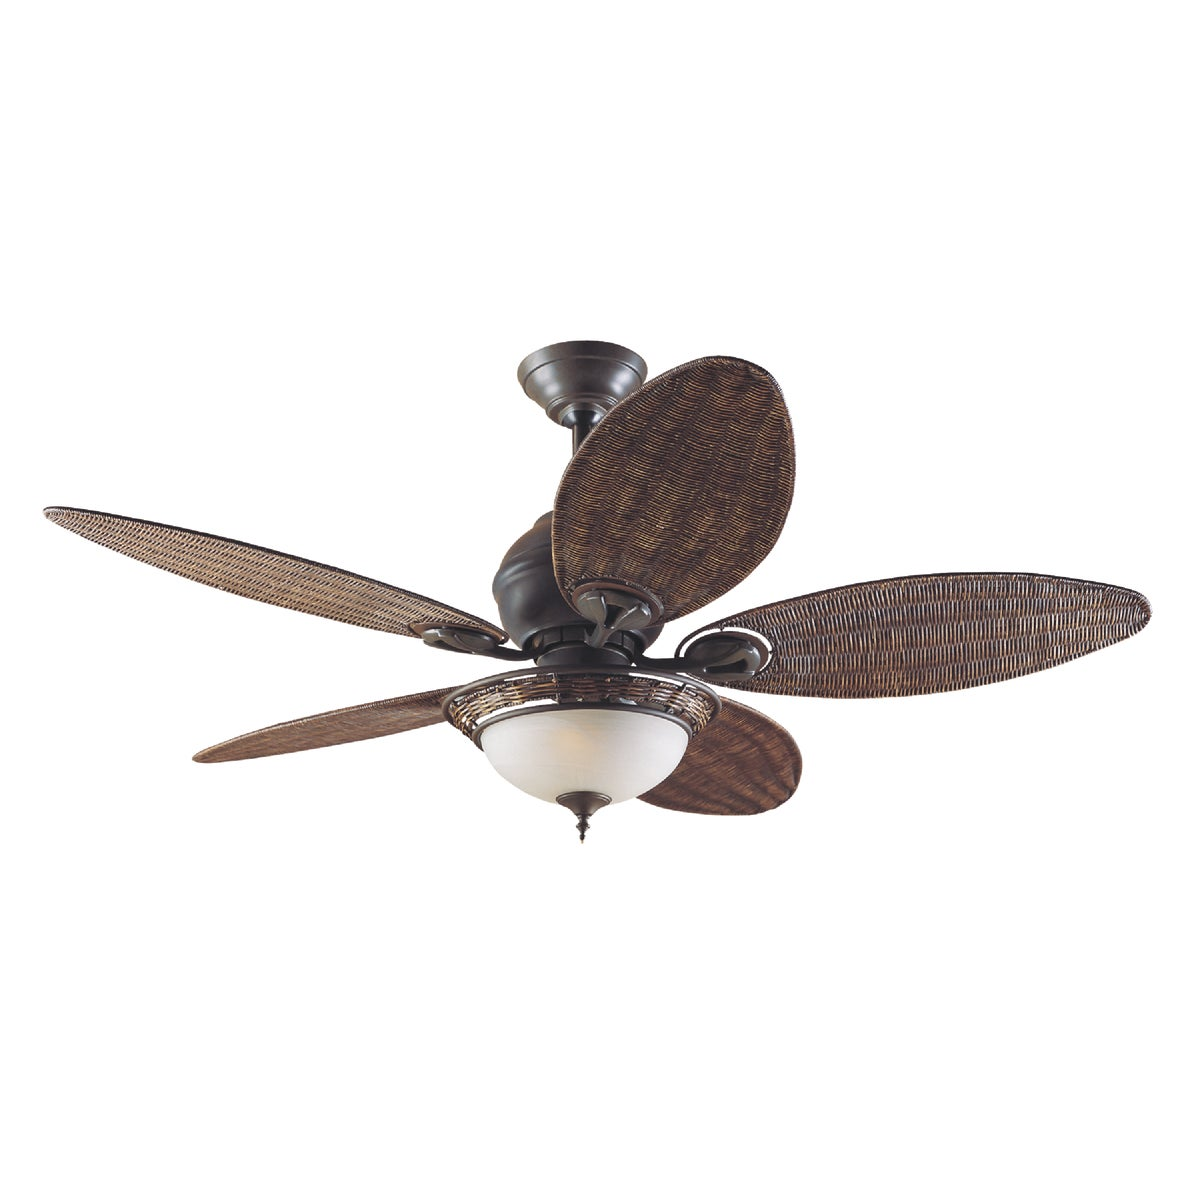 "54"" BRONZE CEILING FAN - 54095 by Hunter Fan Co"